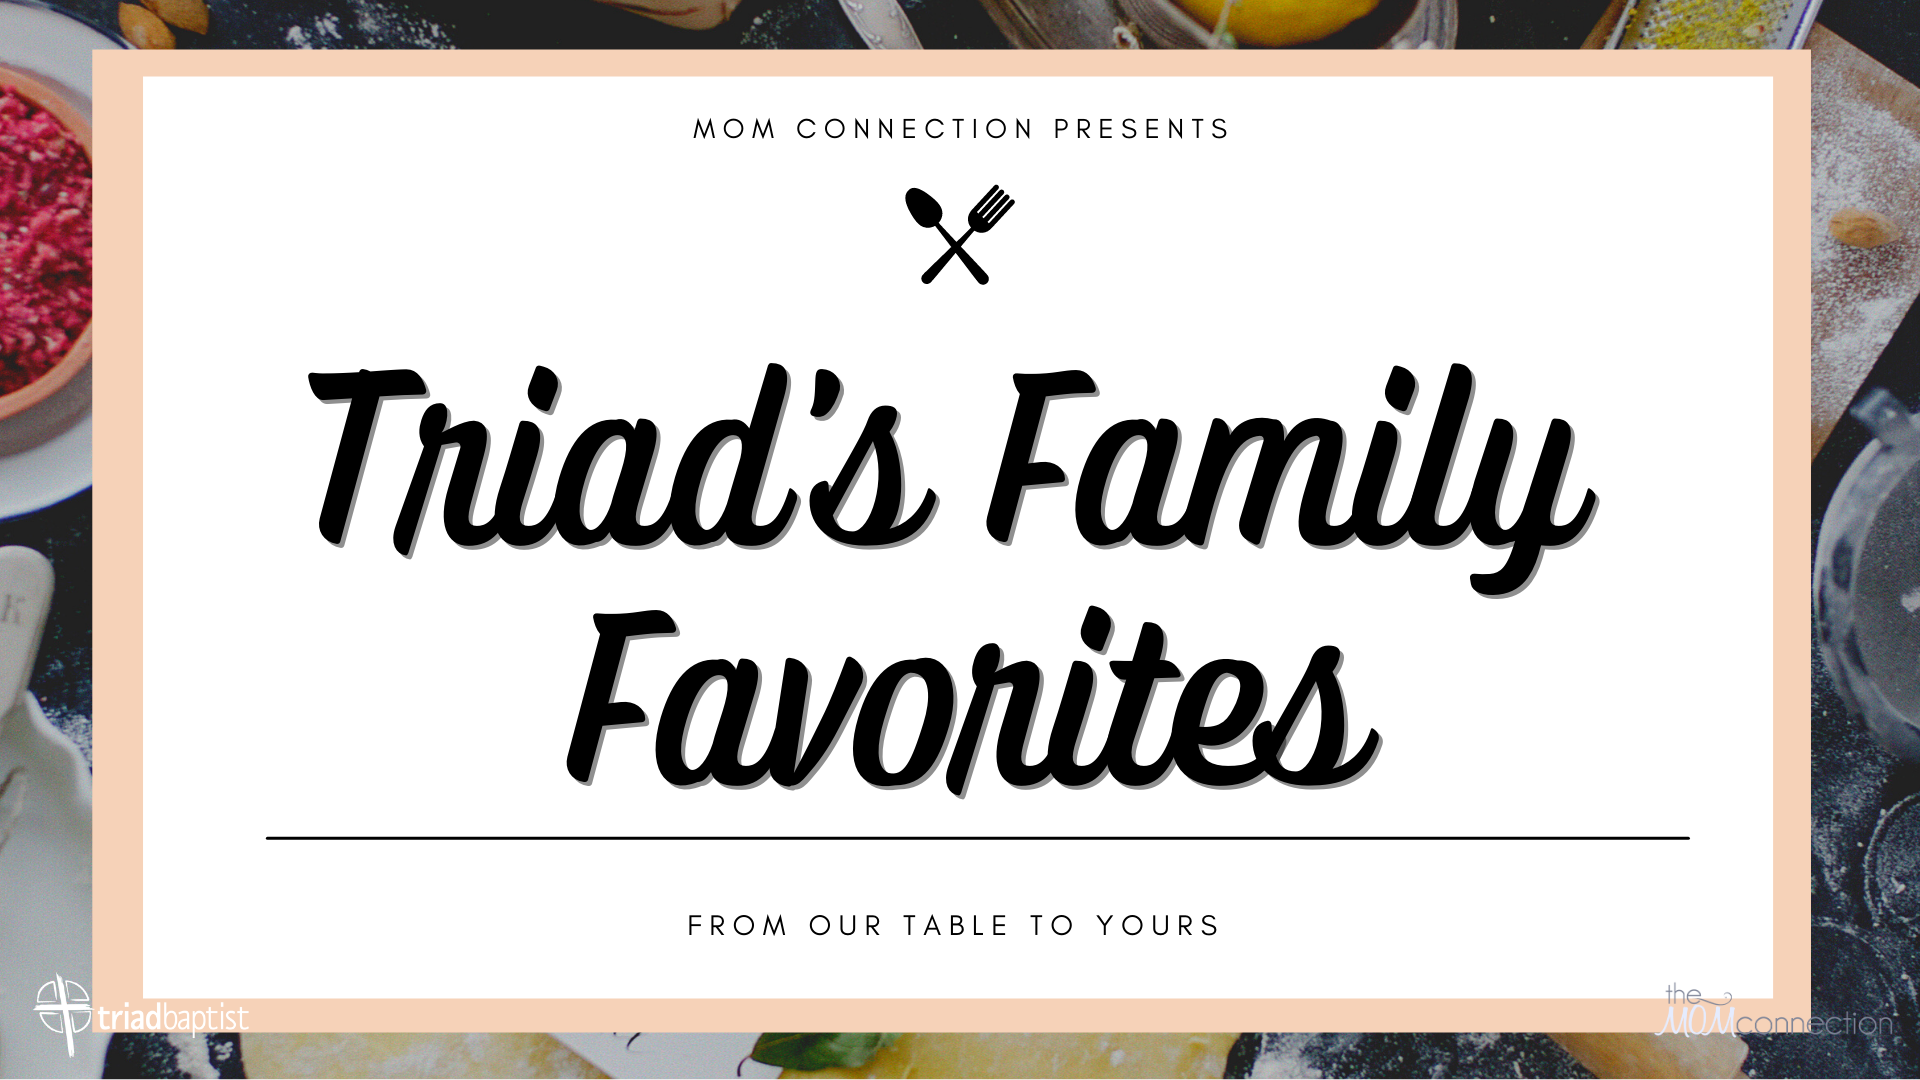 Copy of Triad's family favorites